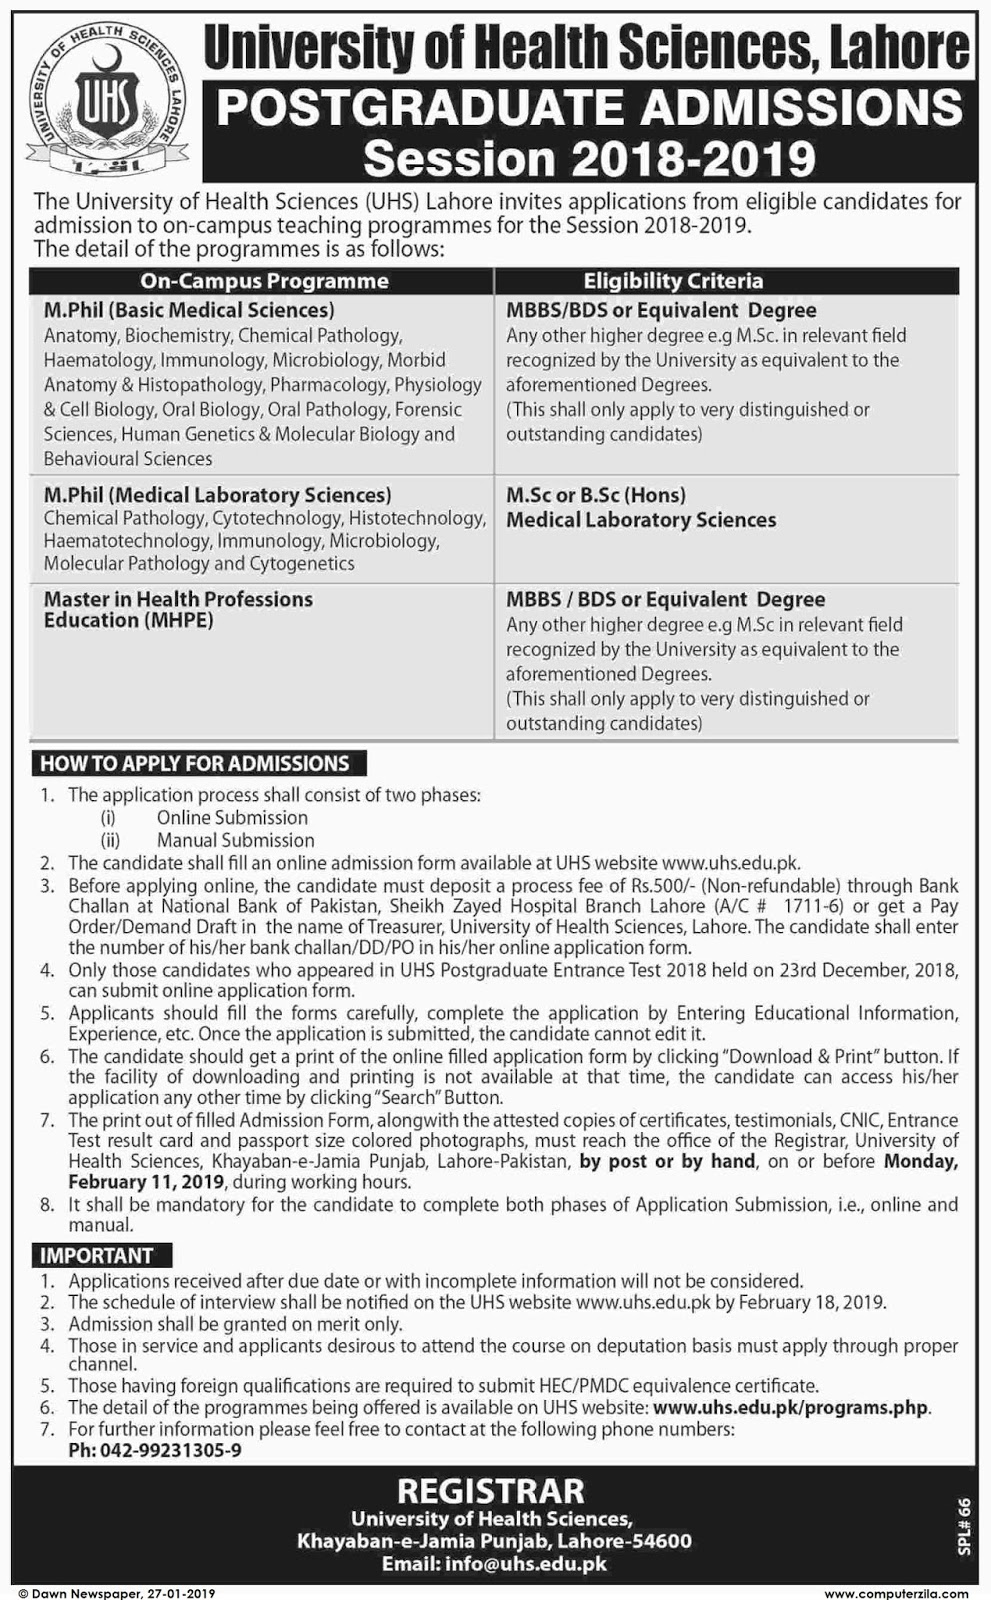 Admissions Open For Spring 2019 At UHS Lahore Campus